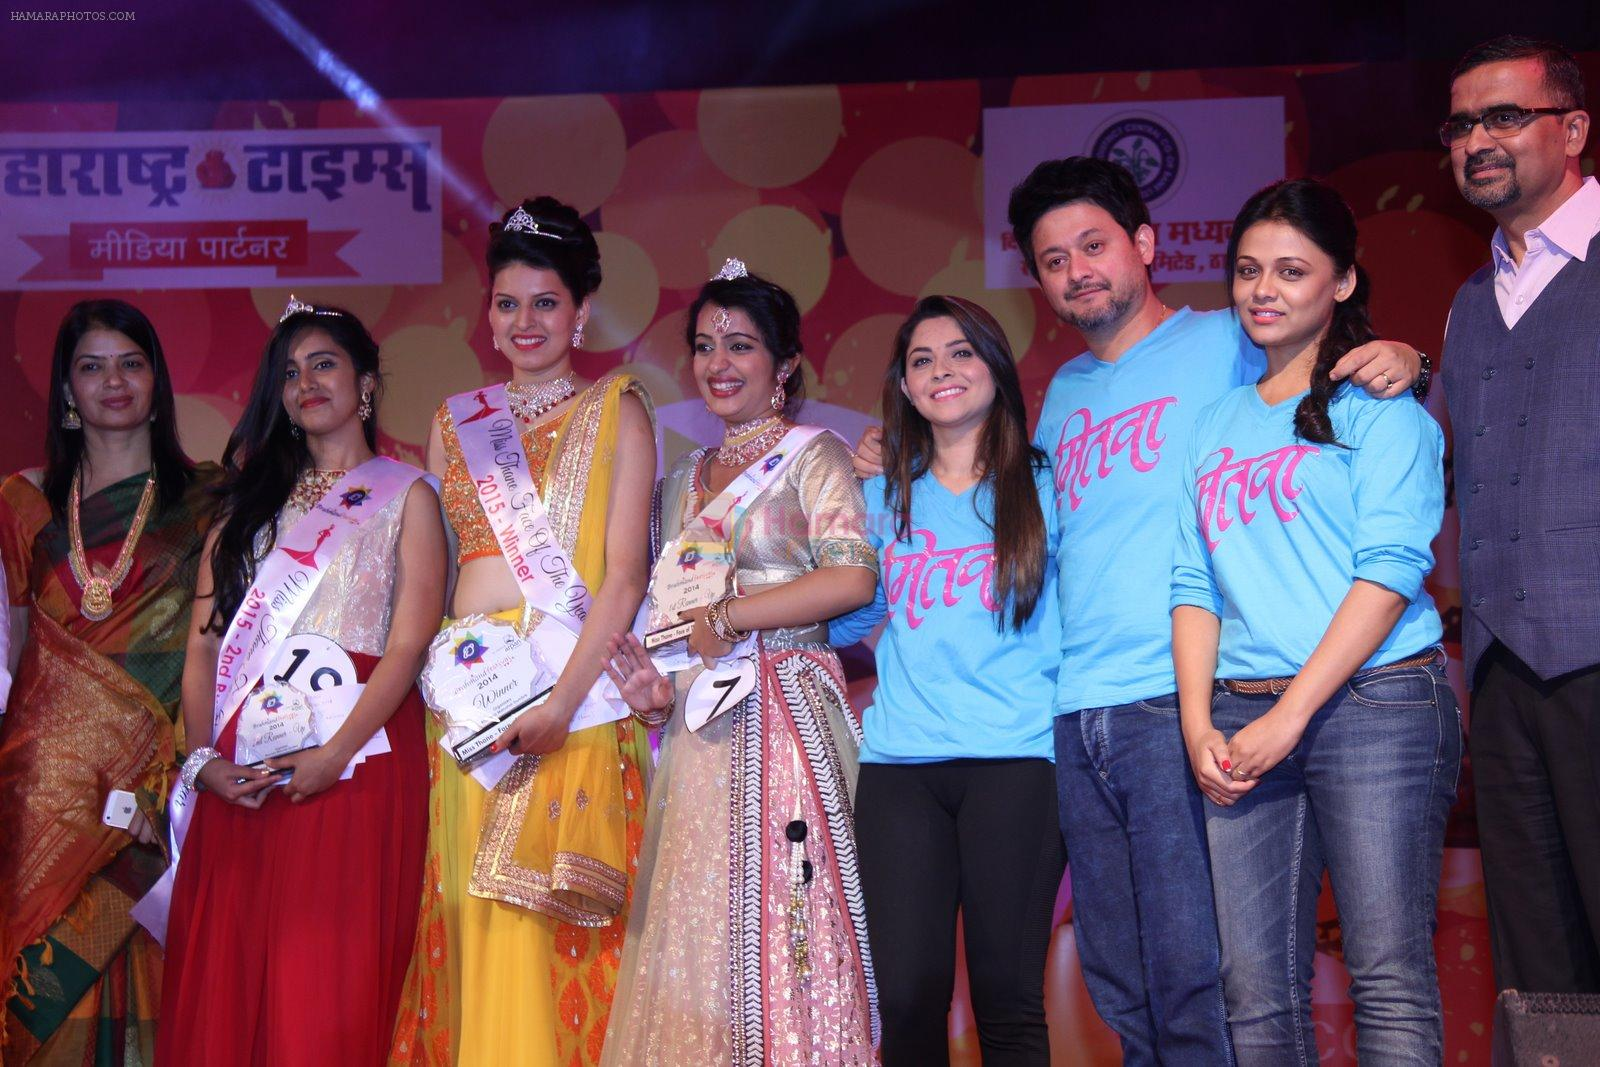 Swapnil Joshi, Sonalee Kulkarni, Prarthana Behere at Mitwa film promotions in Thane, Mumbai on 28th Dec 2014